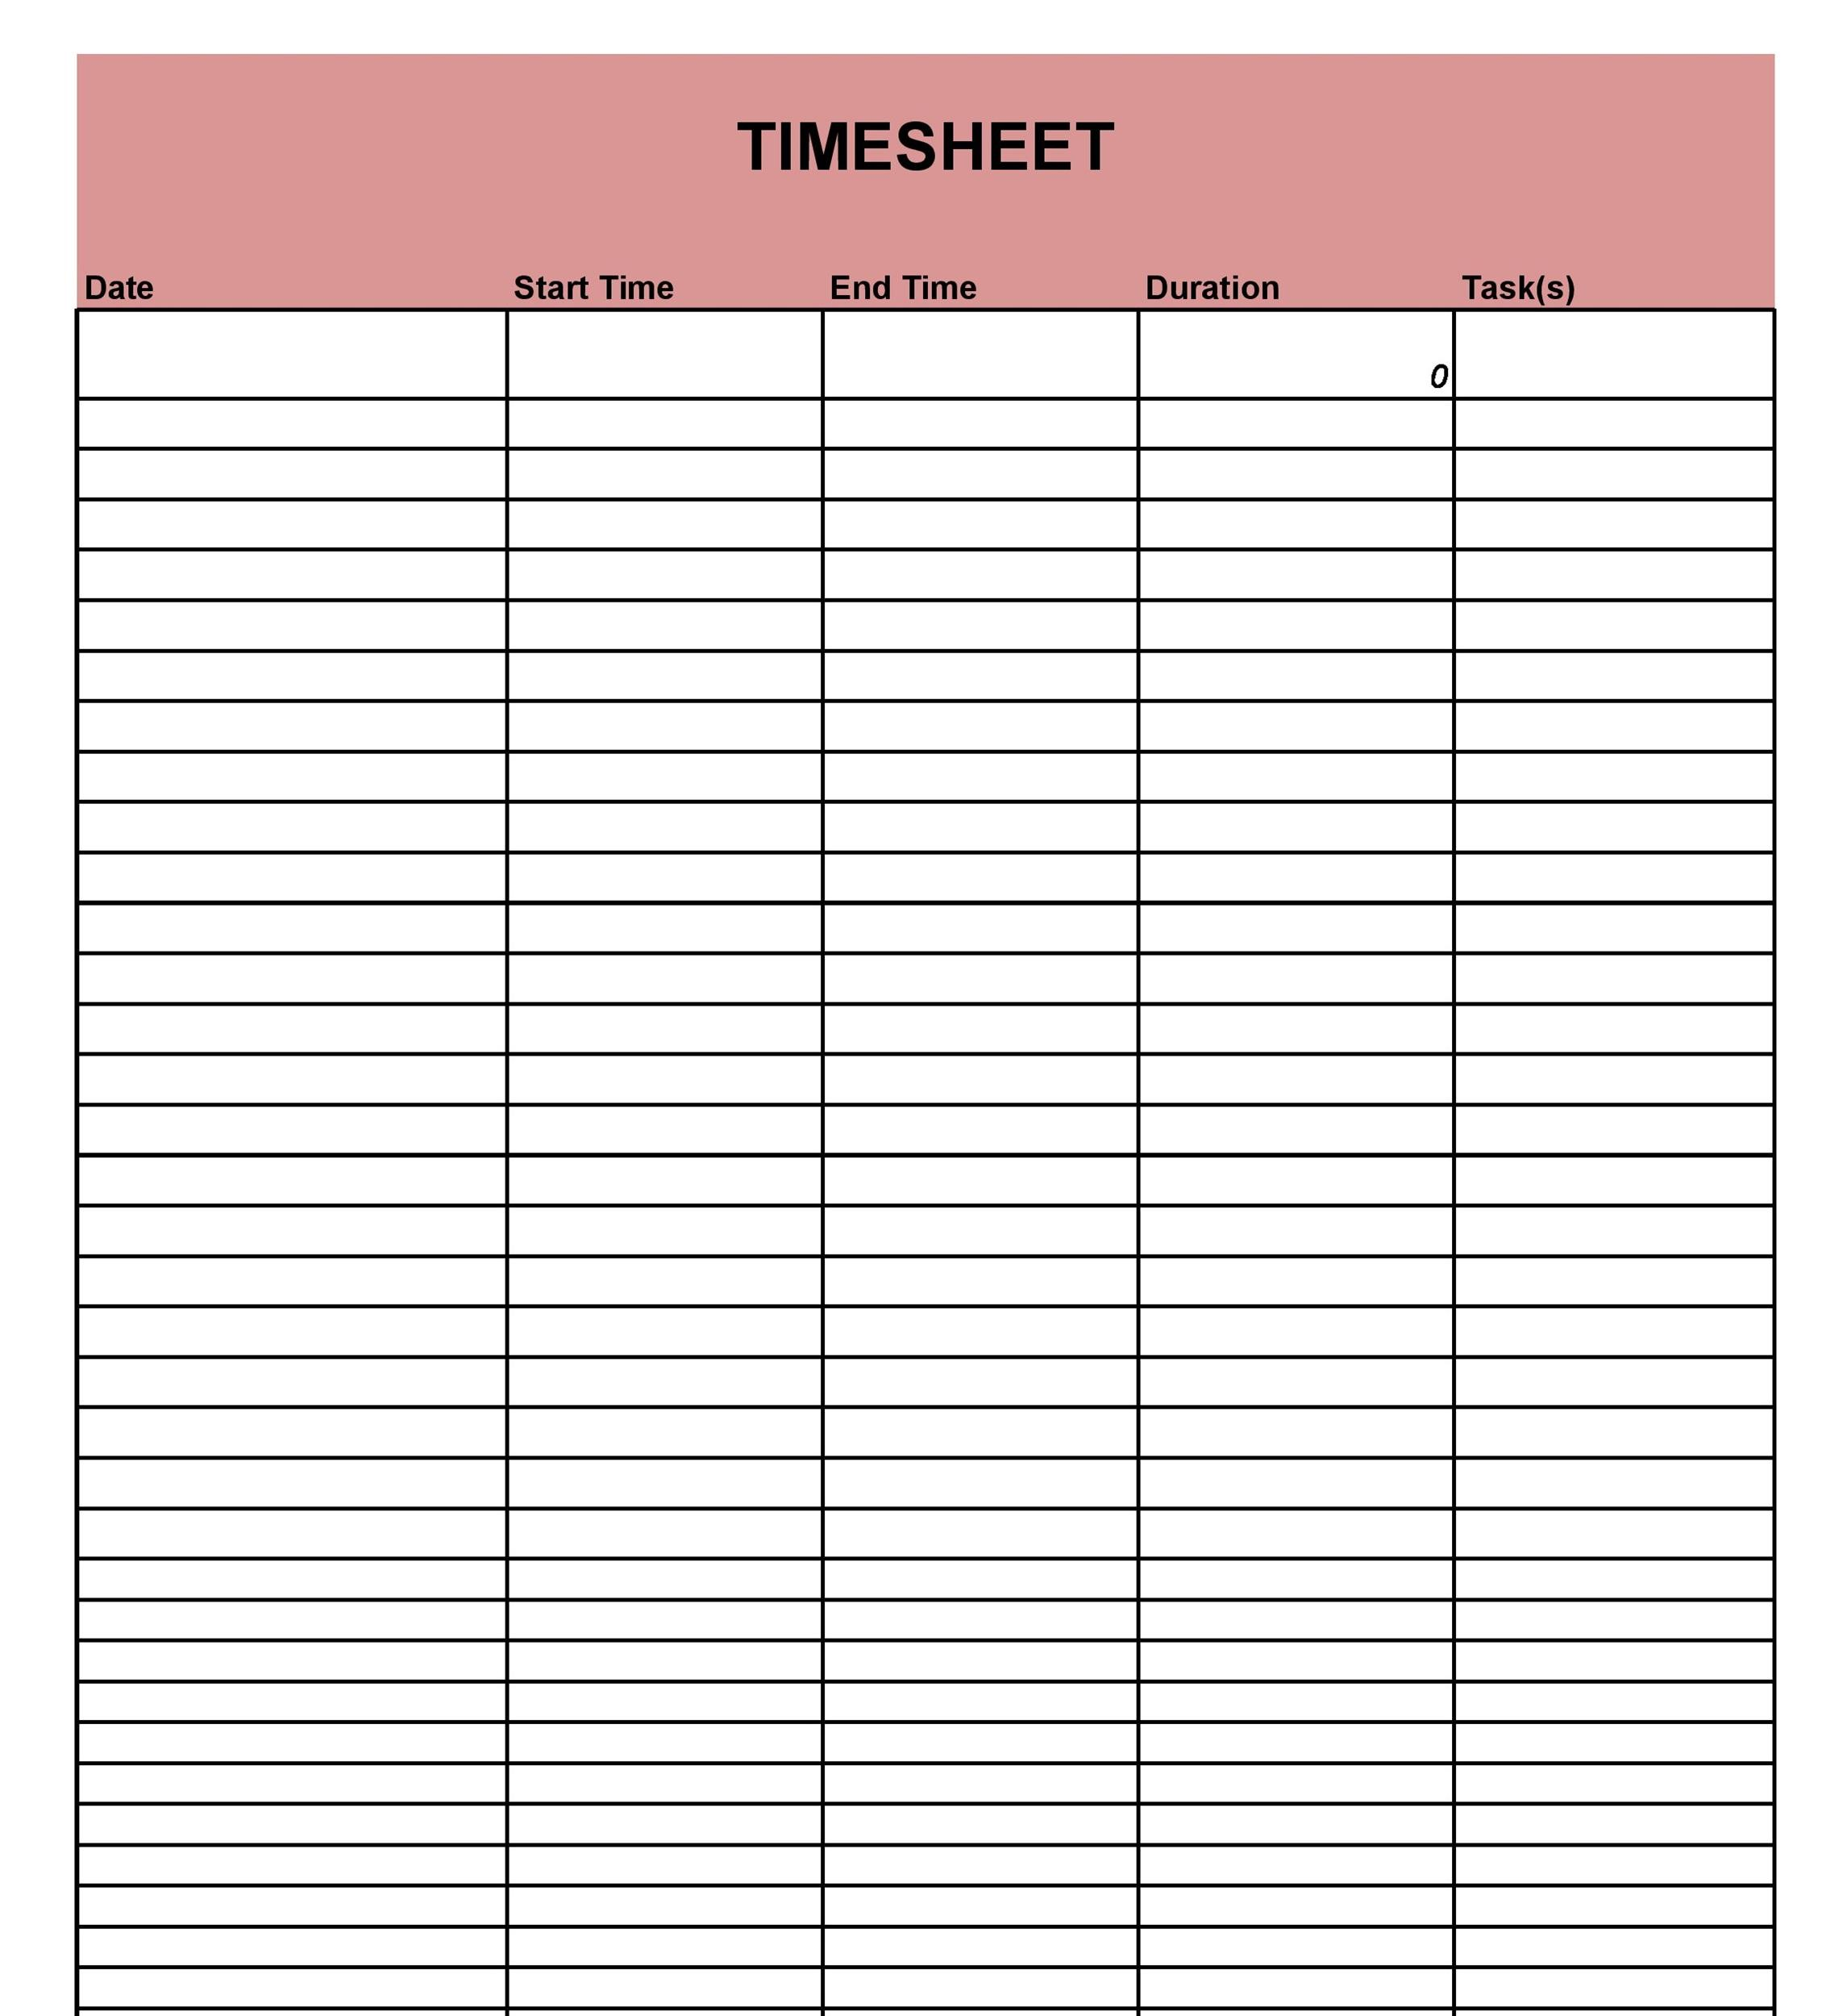 40 free timesheet templates  in excel   u1405 templatelab